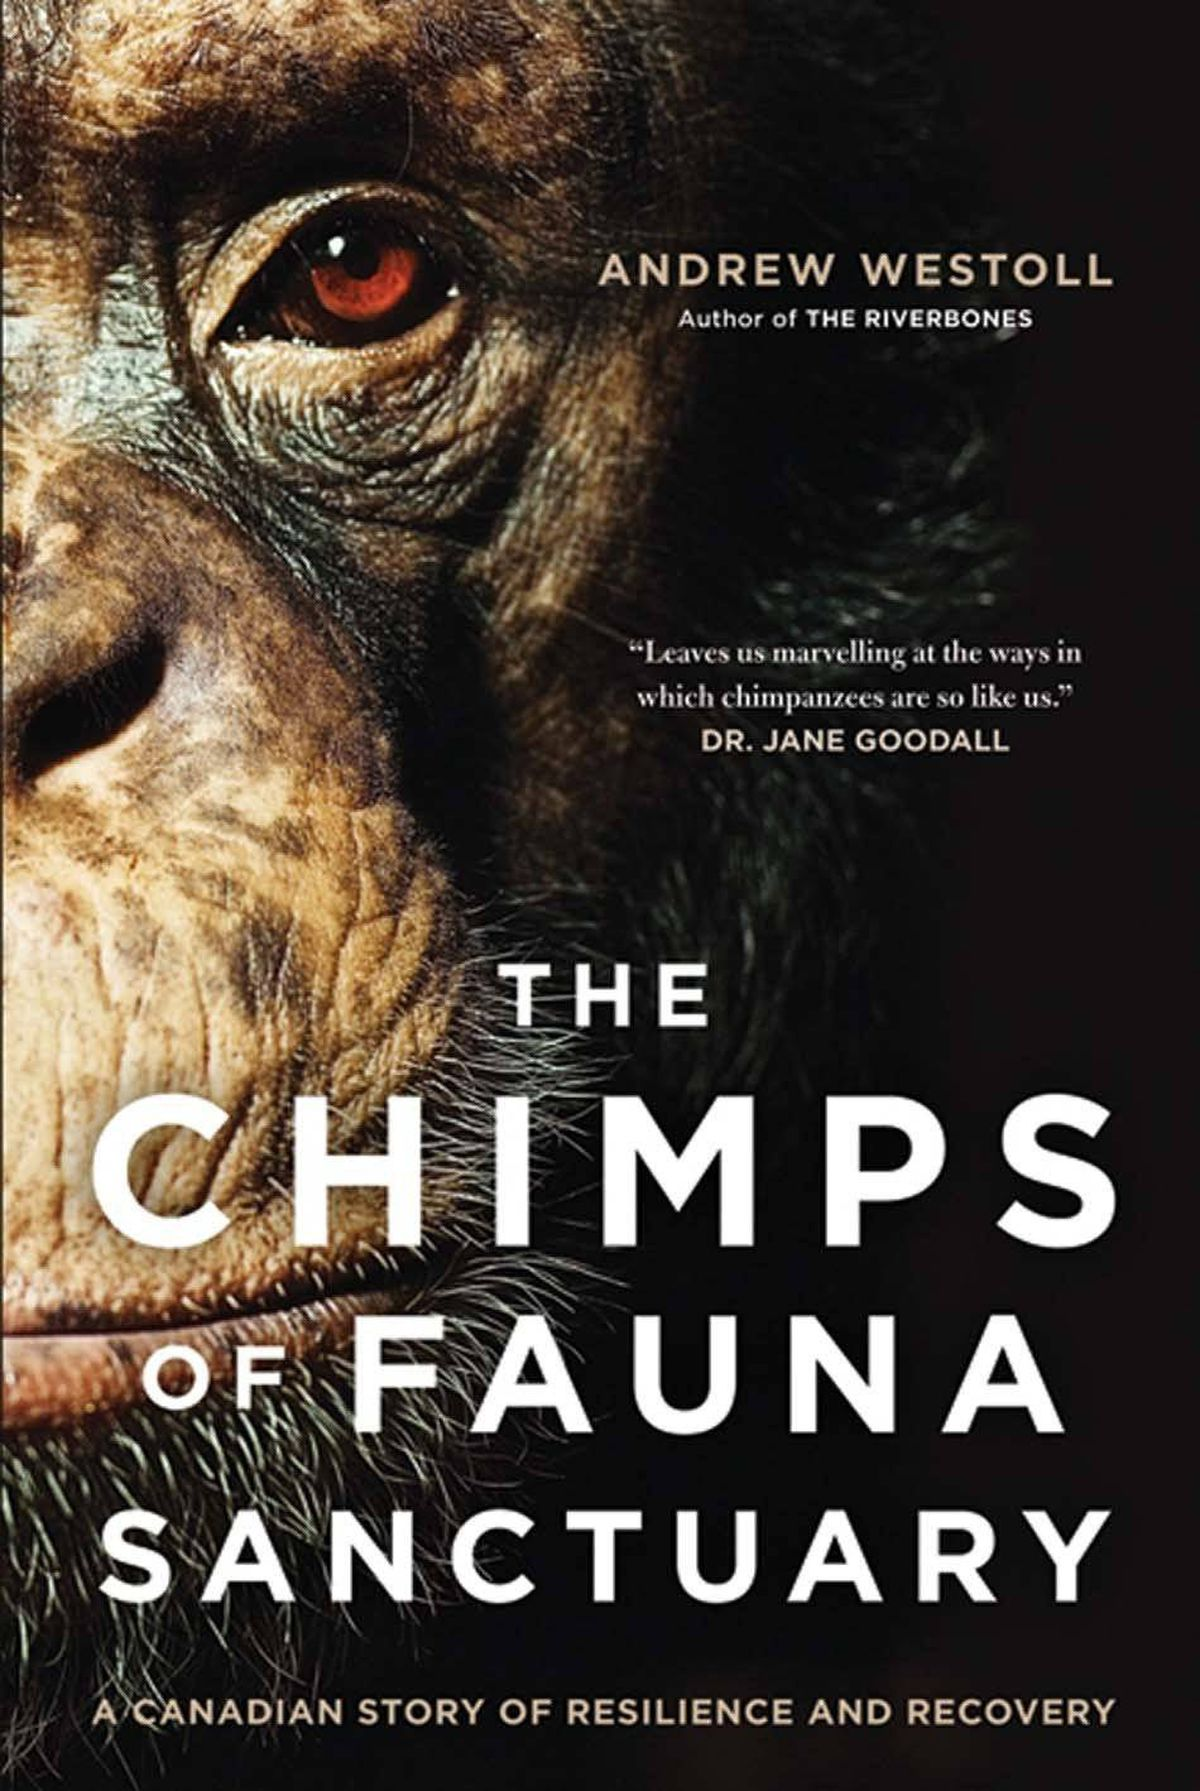 THE CHIMPS OF FAUNA SANCTUARY A Canadian Story of Resilience and Recovery By Andrew Westoll (HarperCollins) Westoll's account of Gloria Grow and her Quebec sanctuary for damaged creatures should make us rethink what it is to be human – and animal. It's an opera of dramatic events, heart-rending tragedies and uplifting triumphs. For anyone interested in empathy and recovery, this book is required reading. – Linda Spalding